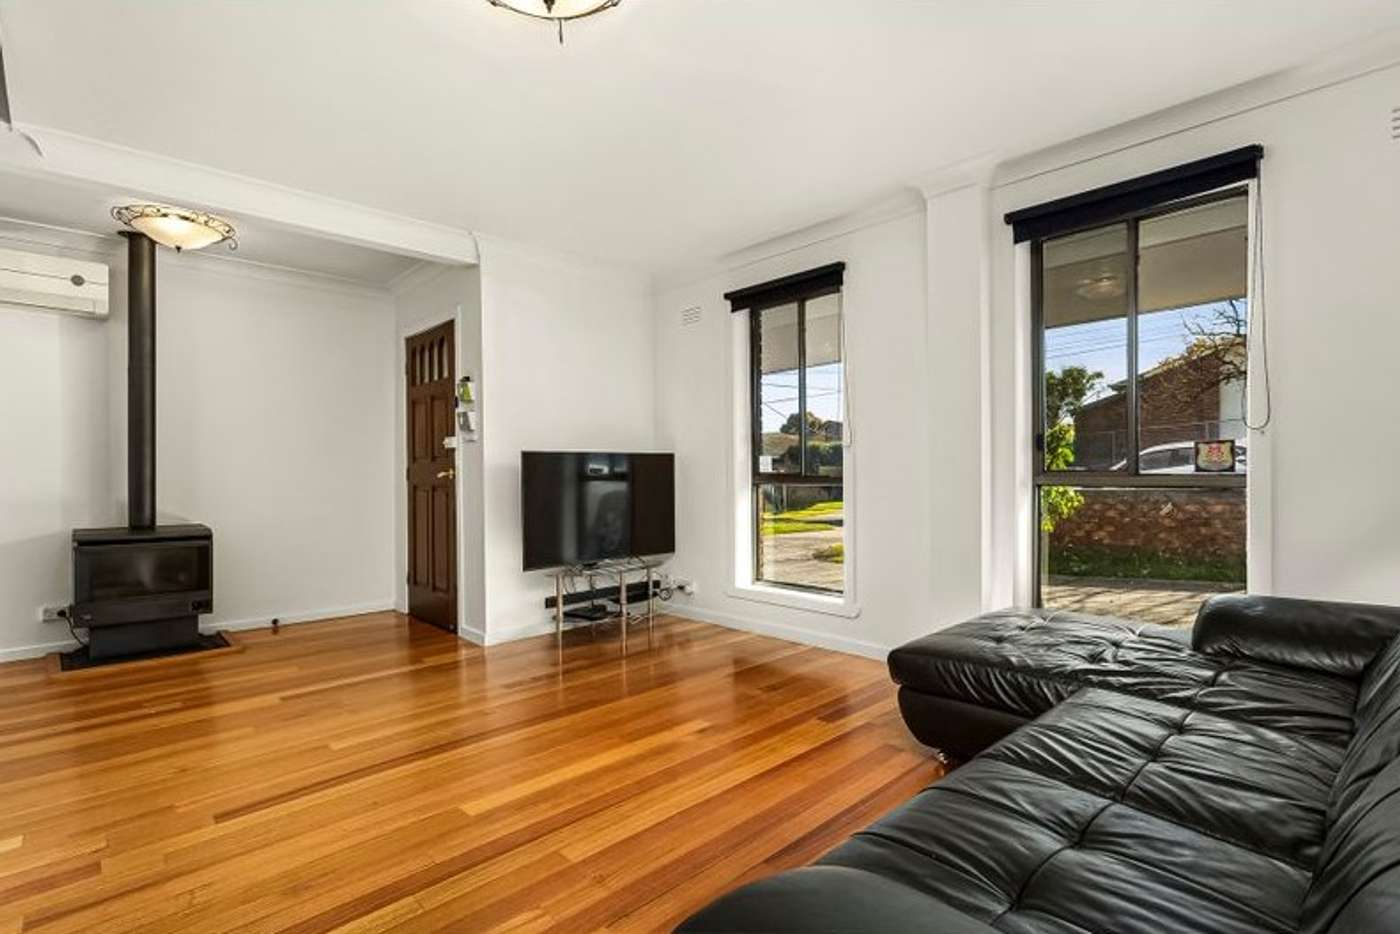 Sixth view of Homely townhouse listing, 3/699 Pascoe Vale Rd., Glenroy VIC 3046